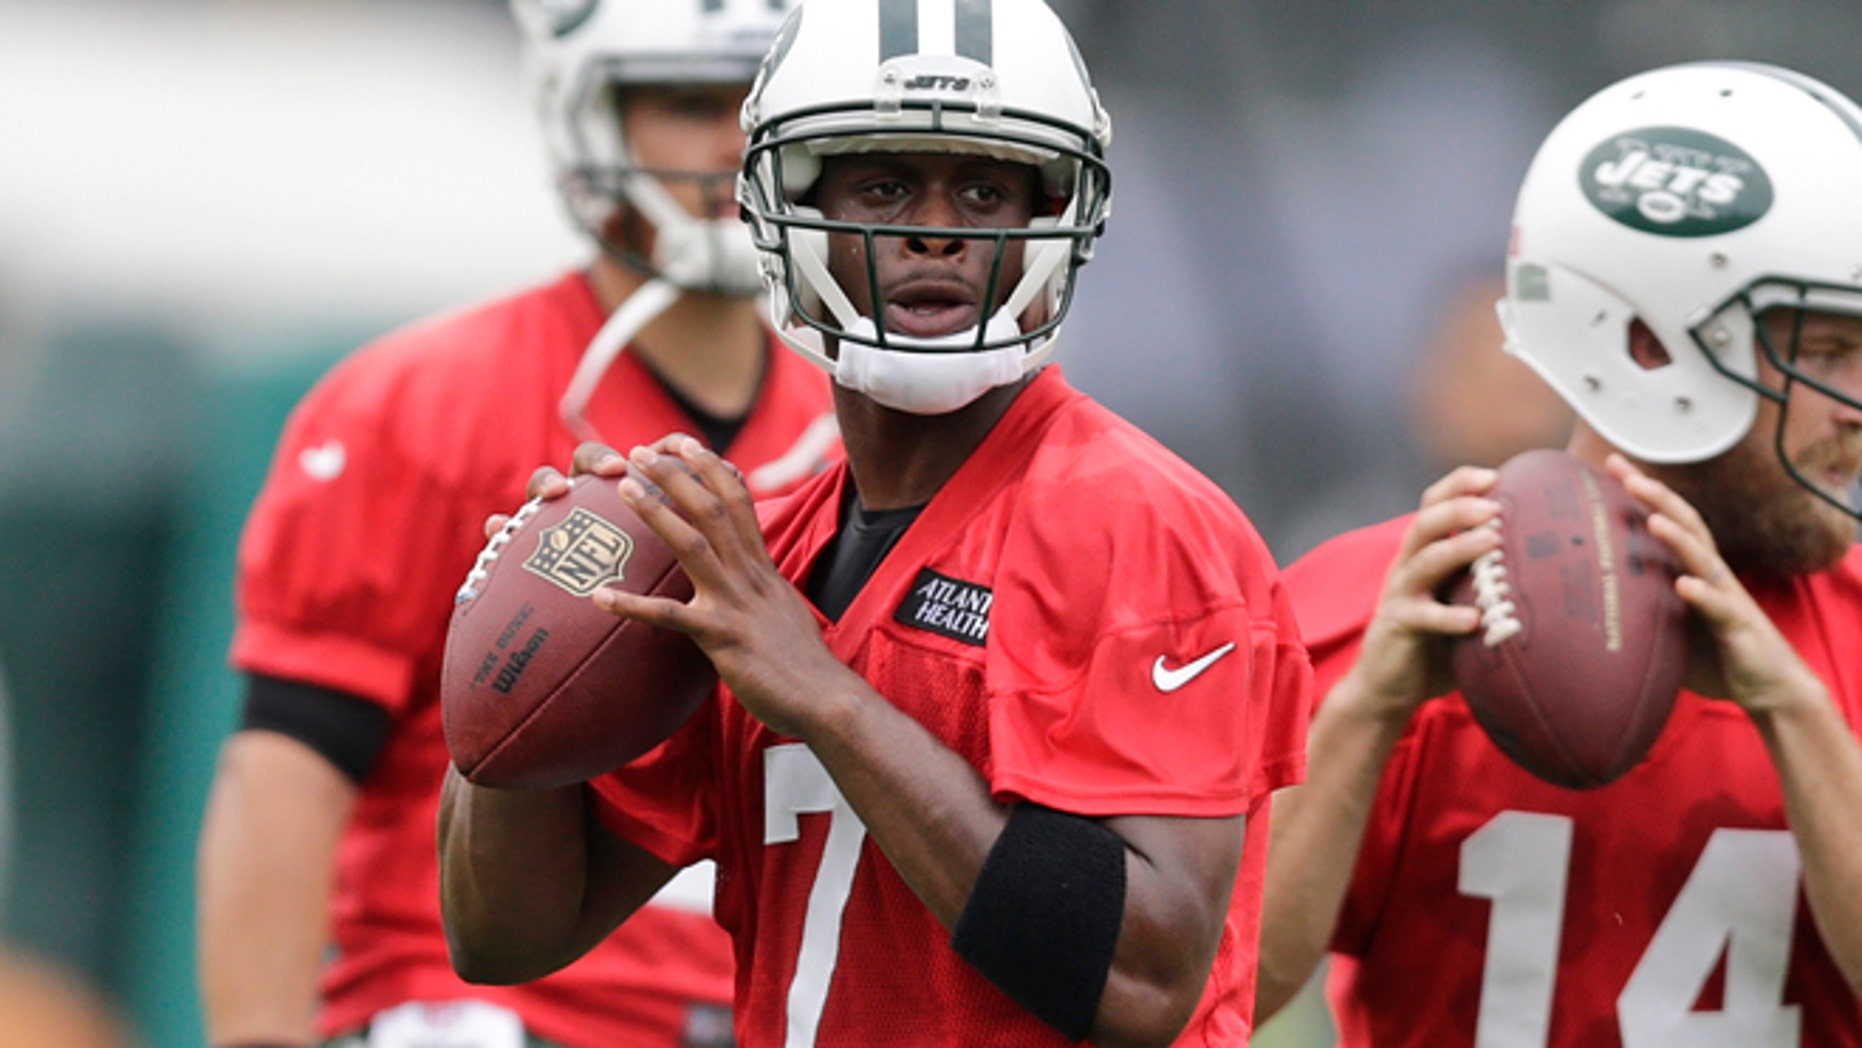 July 30, 2015: New York Jets quarterback Geno Smith, left, and quarterback Ryan Fitzpatrick, right, throw passes during drills at NFL football training camp in Florham Park, N.J.